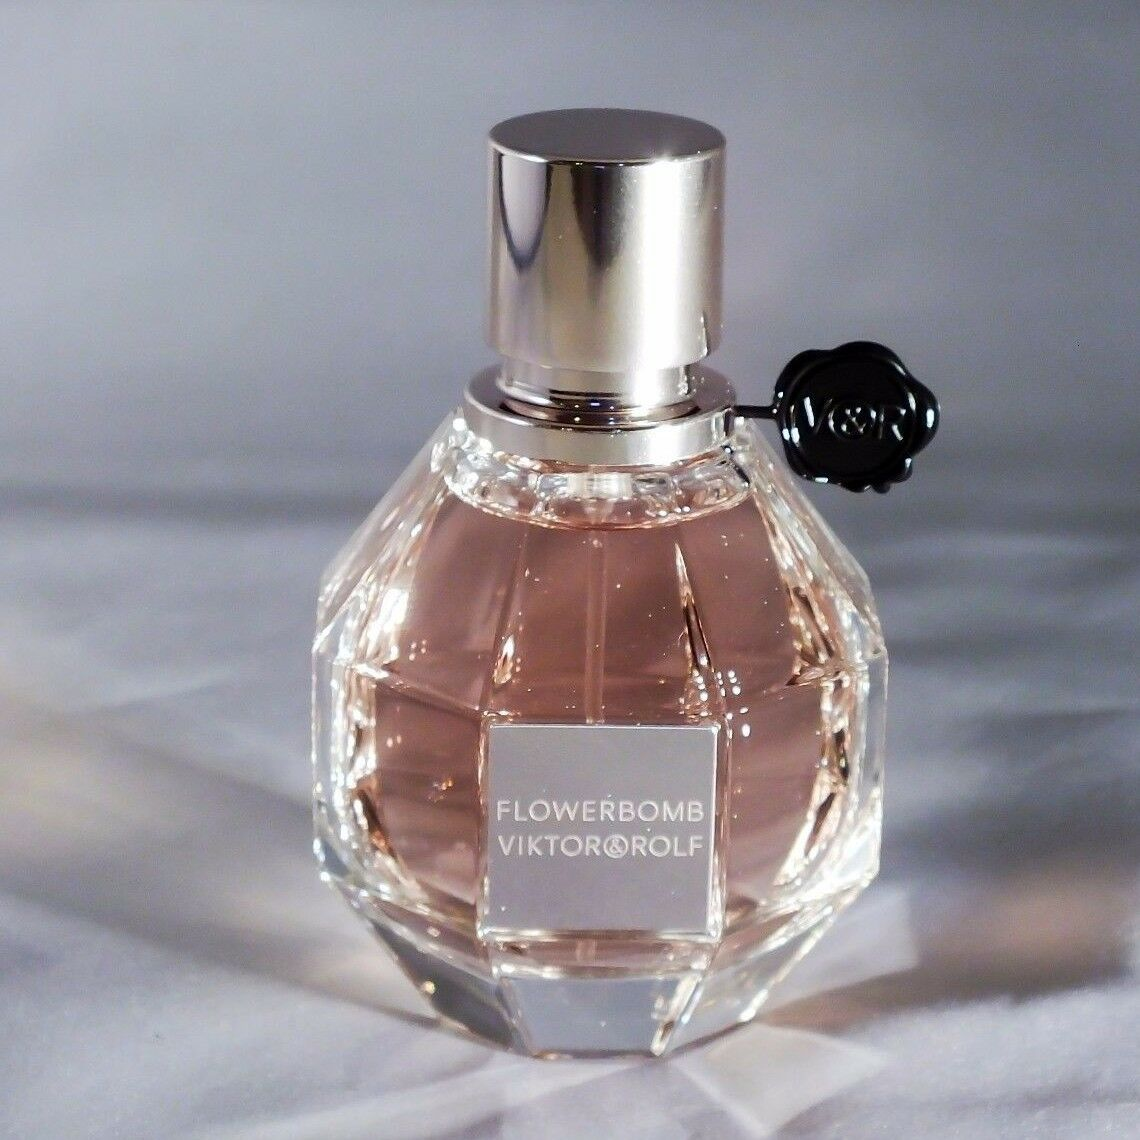 FLOWERBOMB (AUTHENTIC, NEW & SEALED) by Viktor & Rolf 3.4oz or 1.7oz EDP Women